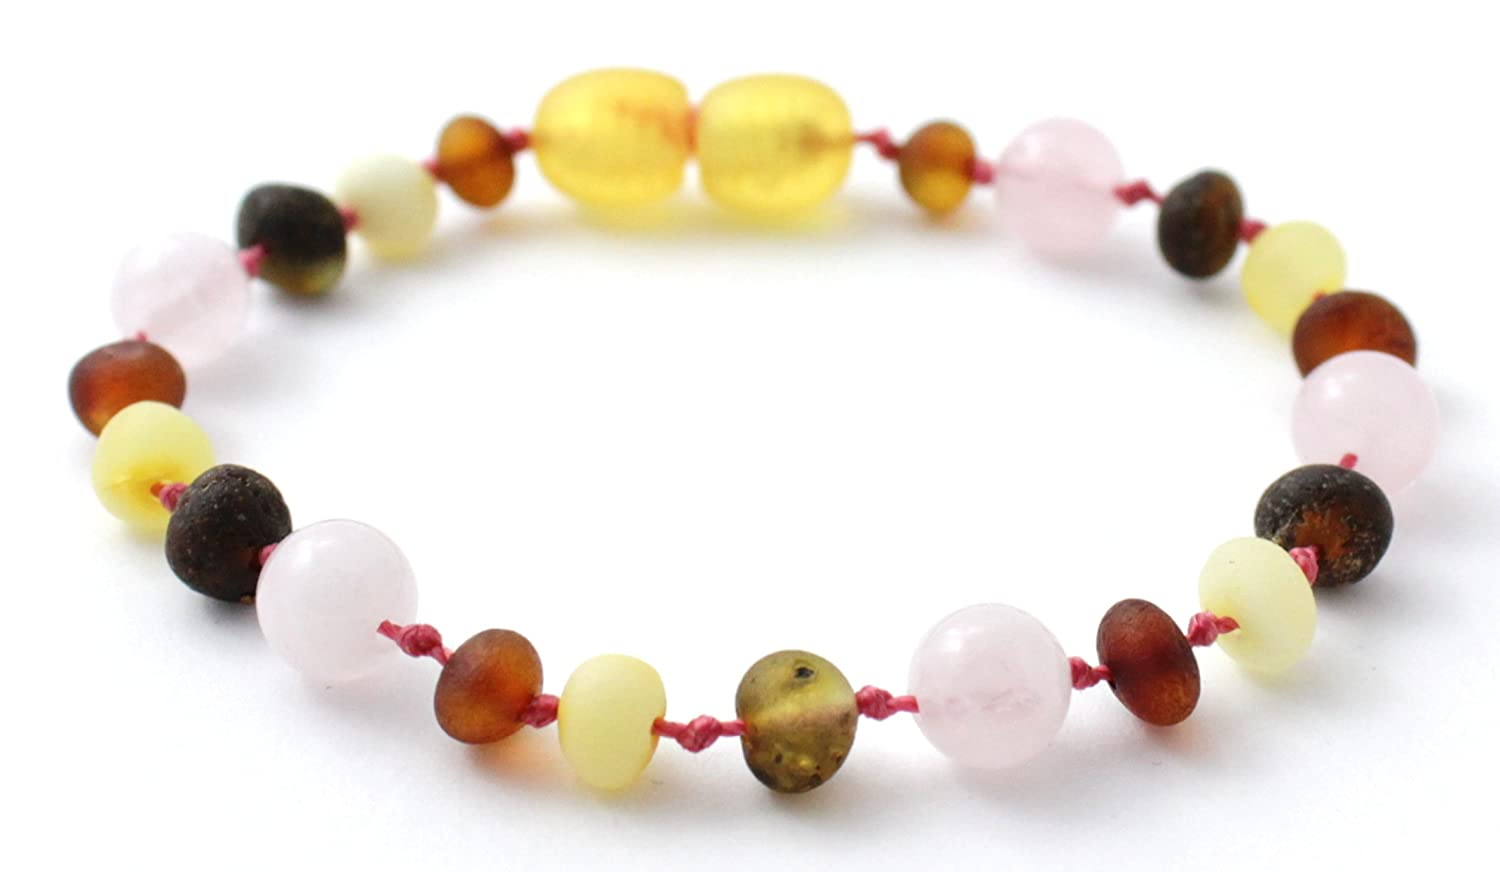 Unpolished Baltic Amber Teething Bracelet/Anklet made with Rose Quartz Beads - Size 6.3 inches (16 cm) - Raw Multicolor Amber Beads - BoutiqueAmber (6.3 inches, Raw Multi/Quartz)